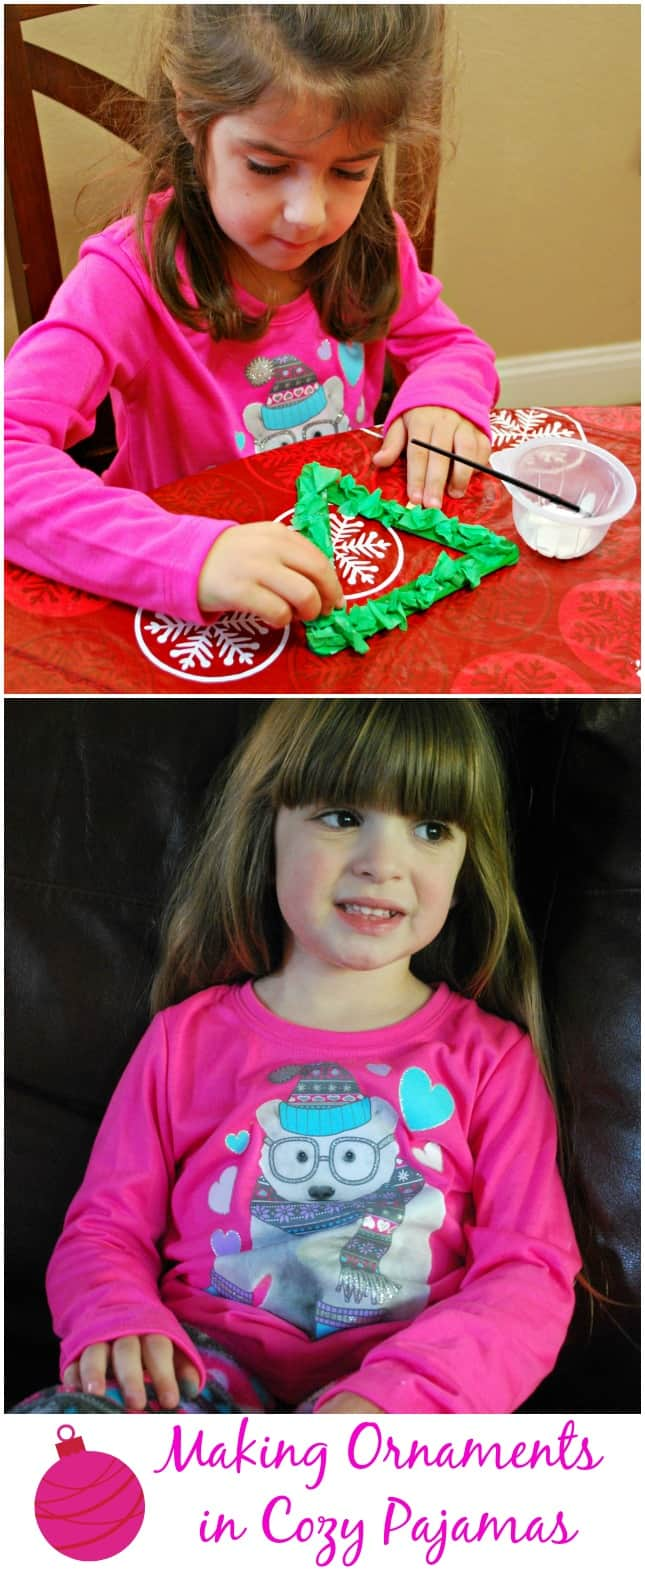 We had fun making ornaments in our new pajamas from Sears. #shop #ThisisStyle #Cbias